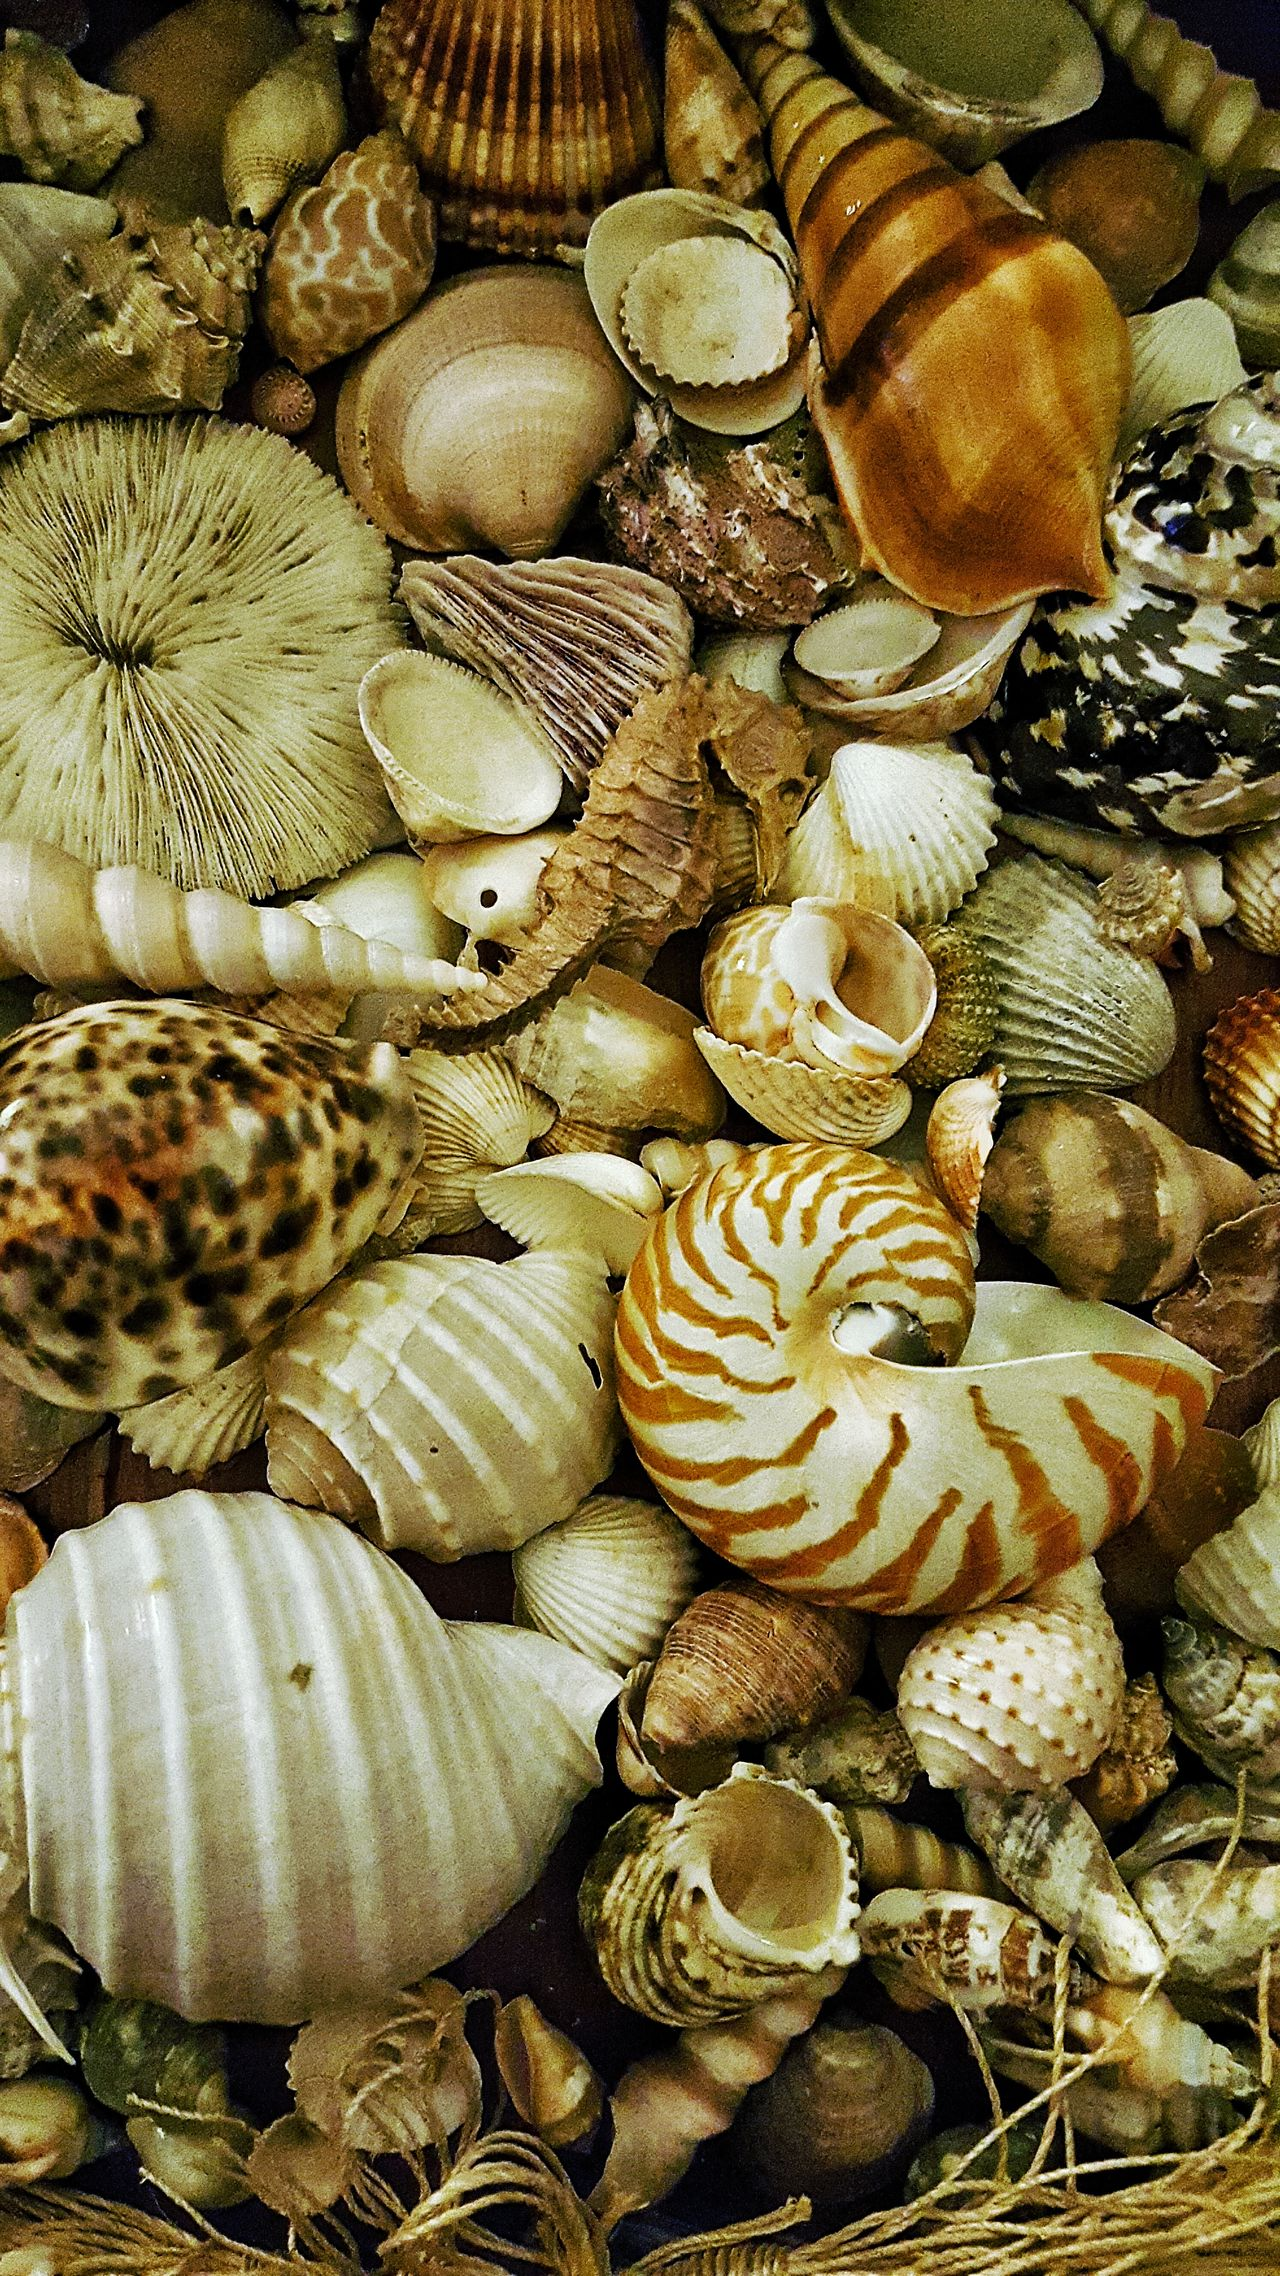 Caracolas Caracolas De Mar Conch Shells Shells🐚 Shell Beach Shells On Wood Caracola Caracolas Sea Sea Shells Sea Shells 🐚 Ocean Ocean Shells Sea_collection Sea Life Sea Ocean Oceano Oceanographic Oceanography Oceanografico Ocean❤ Mar Caracolas Caracolas De Mar